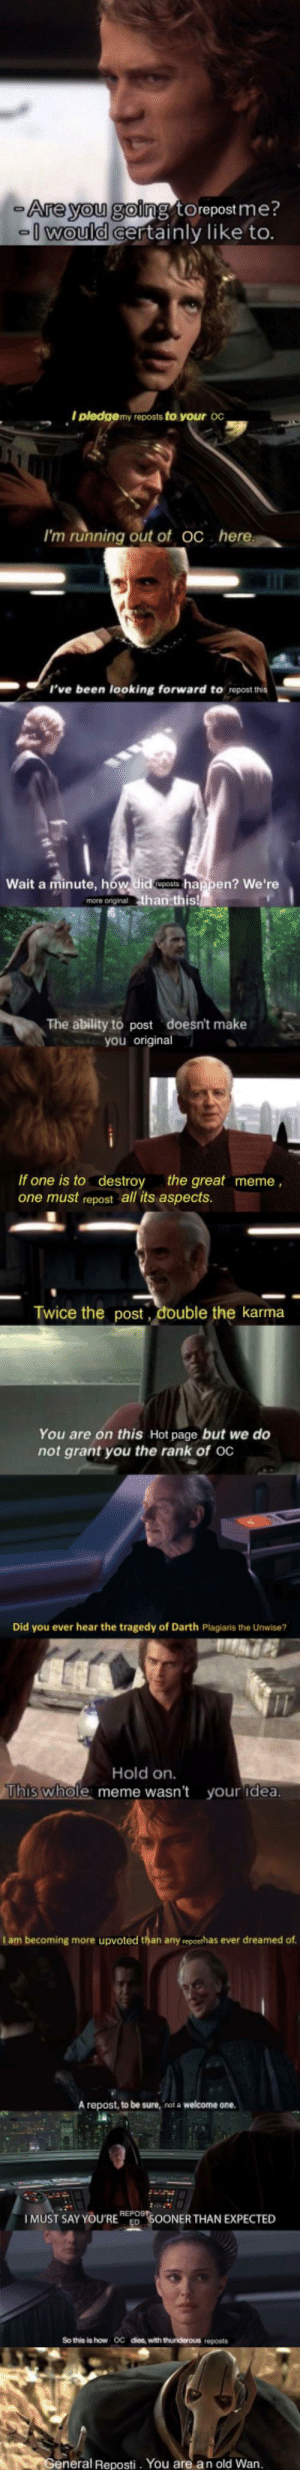 """Meme, Memes, and Karma: Are you going to repost me?  0would certainly like to.  I pledgemy reposts to your OC  I'm running out of oc here  """"rve been looking forward  to repost this  Wait a minute, how.did happen? We're  more original than this!  The ability to post doesn't make  you original  If one is to destroy the great meme,  one must repost all its aspects.  Twice the post, double the karma  You are on this Hot page but we do  not grant you the rank of oc  Did you ever hear the tragedy of Darth Plagiaris the Unwise?  Hold on.  This whole meme wasn't  your idea.  I am becoming more upvoted than any reposthas ever dreamed of.  A repost, to be sure, not a welcome one.  REPOST  IMUST SAY YOU'REED SOONER THAN EXPECTED  dies, with thunderous reposts  So this is how  OC  General Reposti. You are an old Wan. OC compilation of memes addressing reposts"""